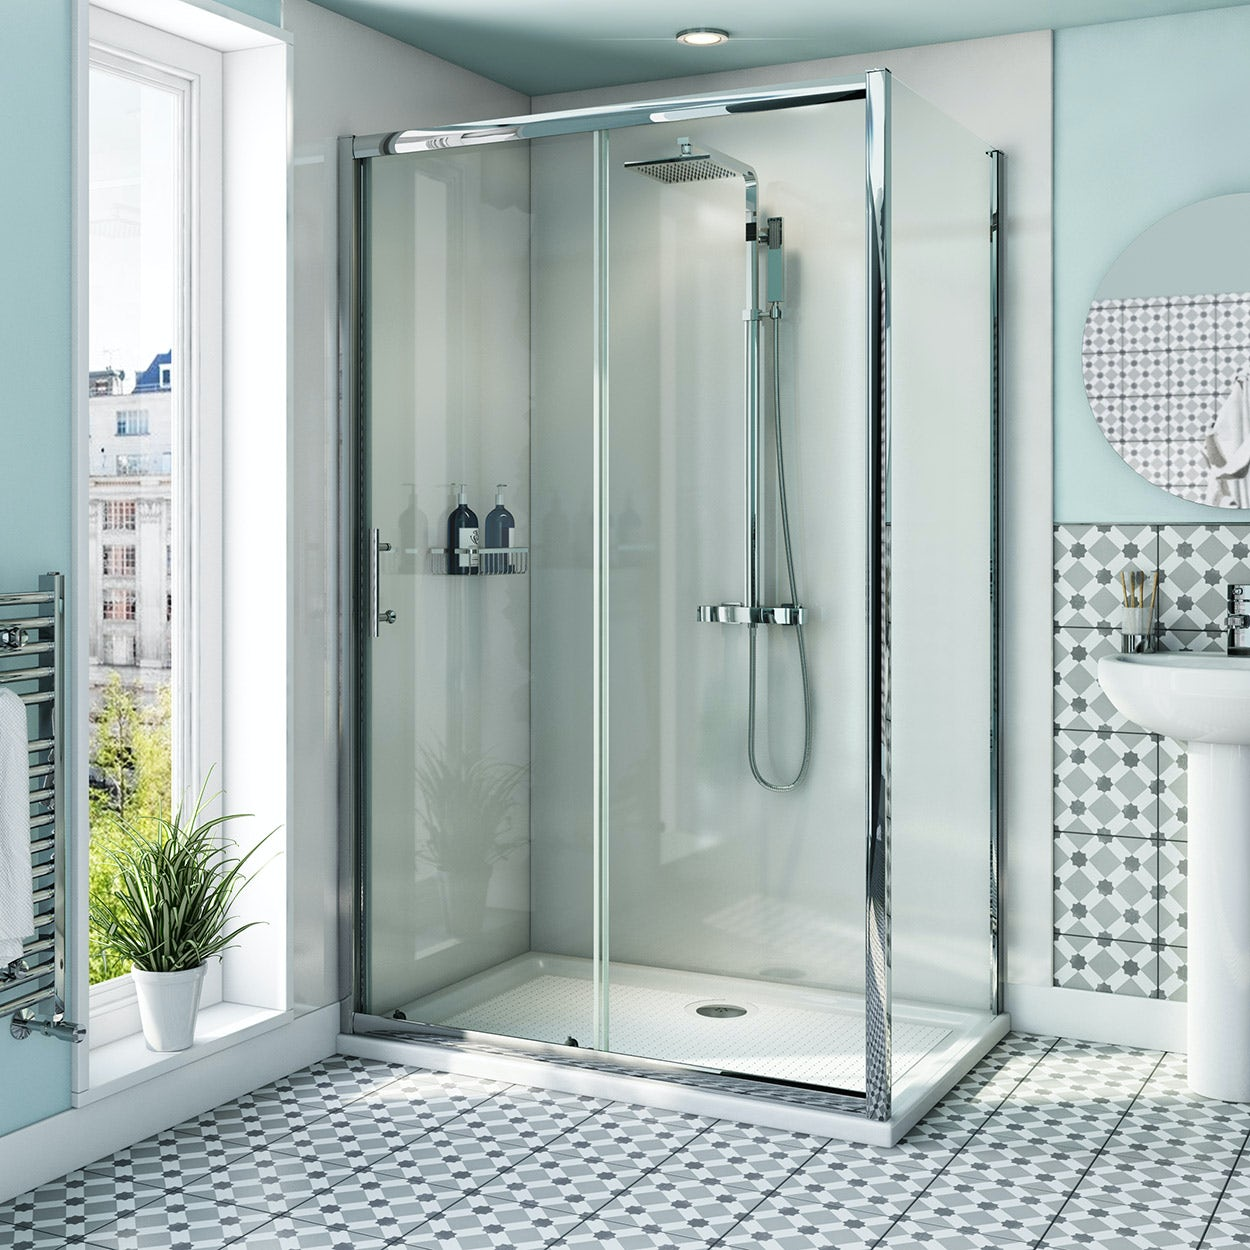 Orchard 6mm sliding shower enclosure with anti-slip tray 1000 x 700